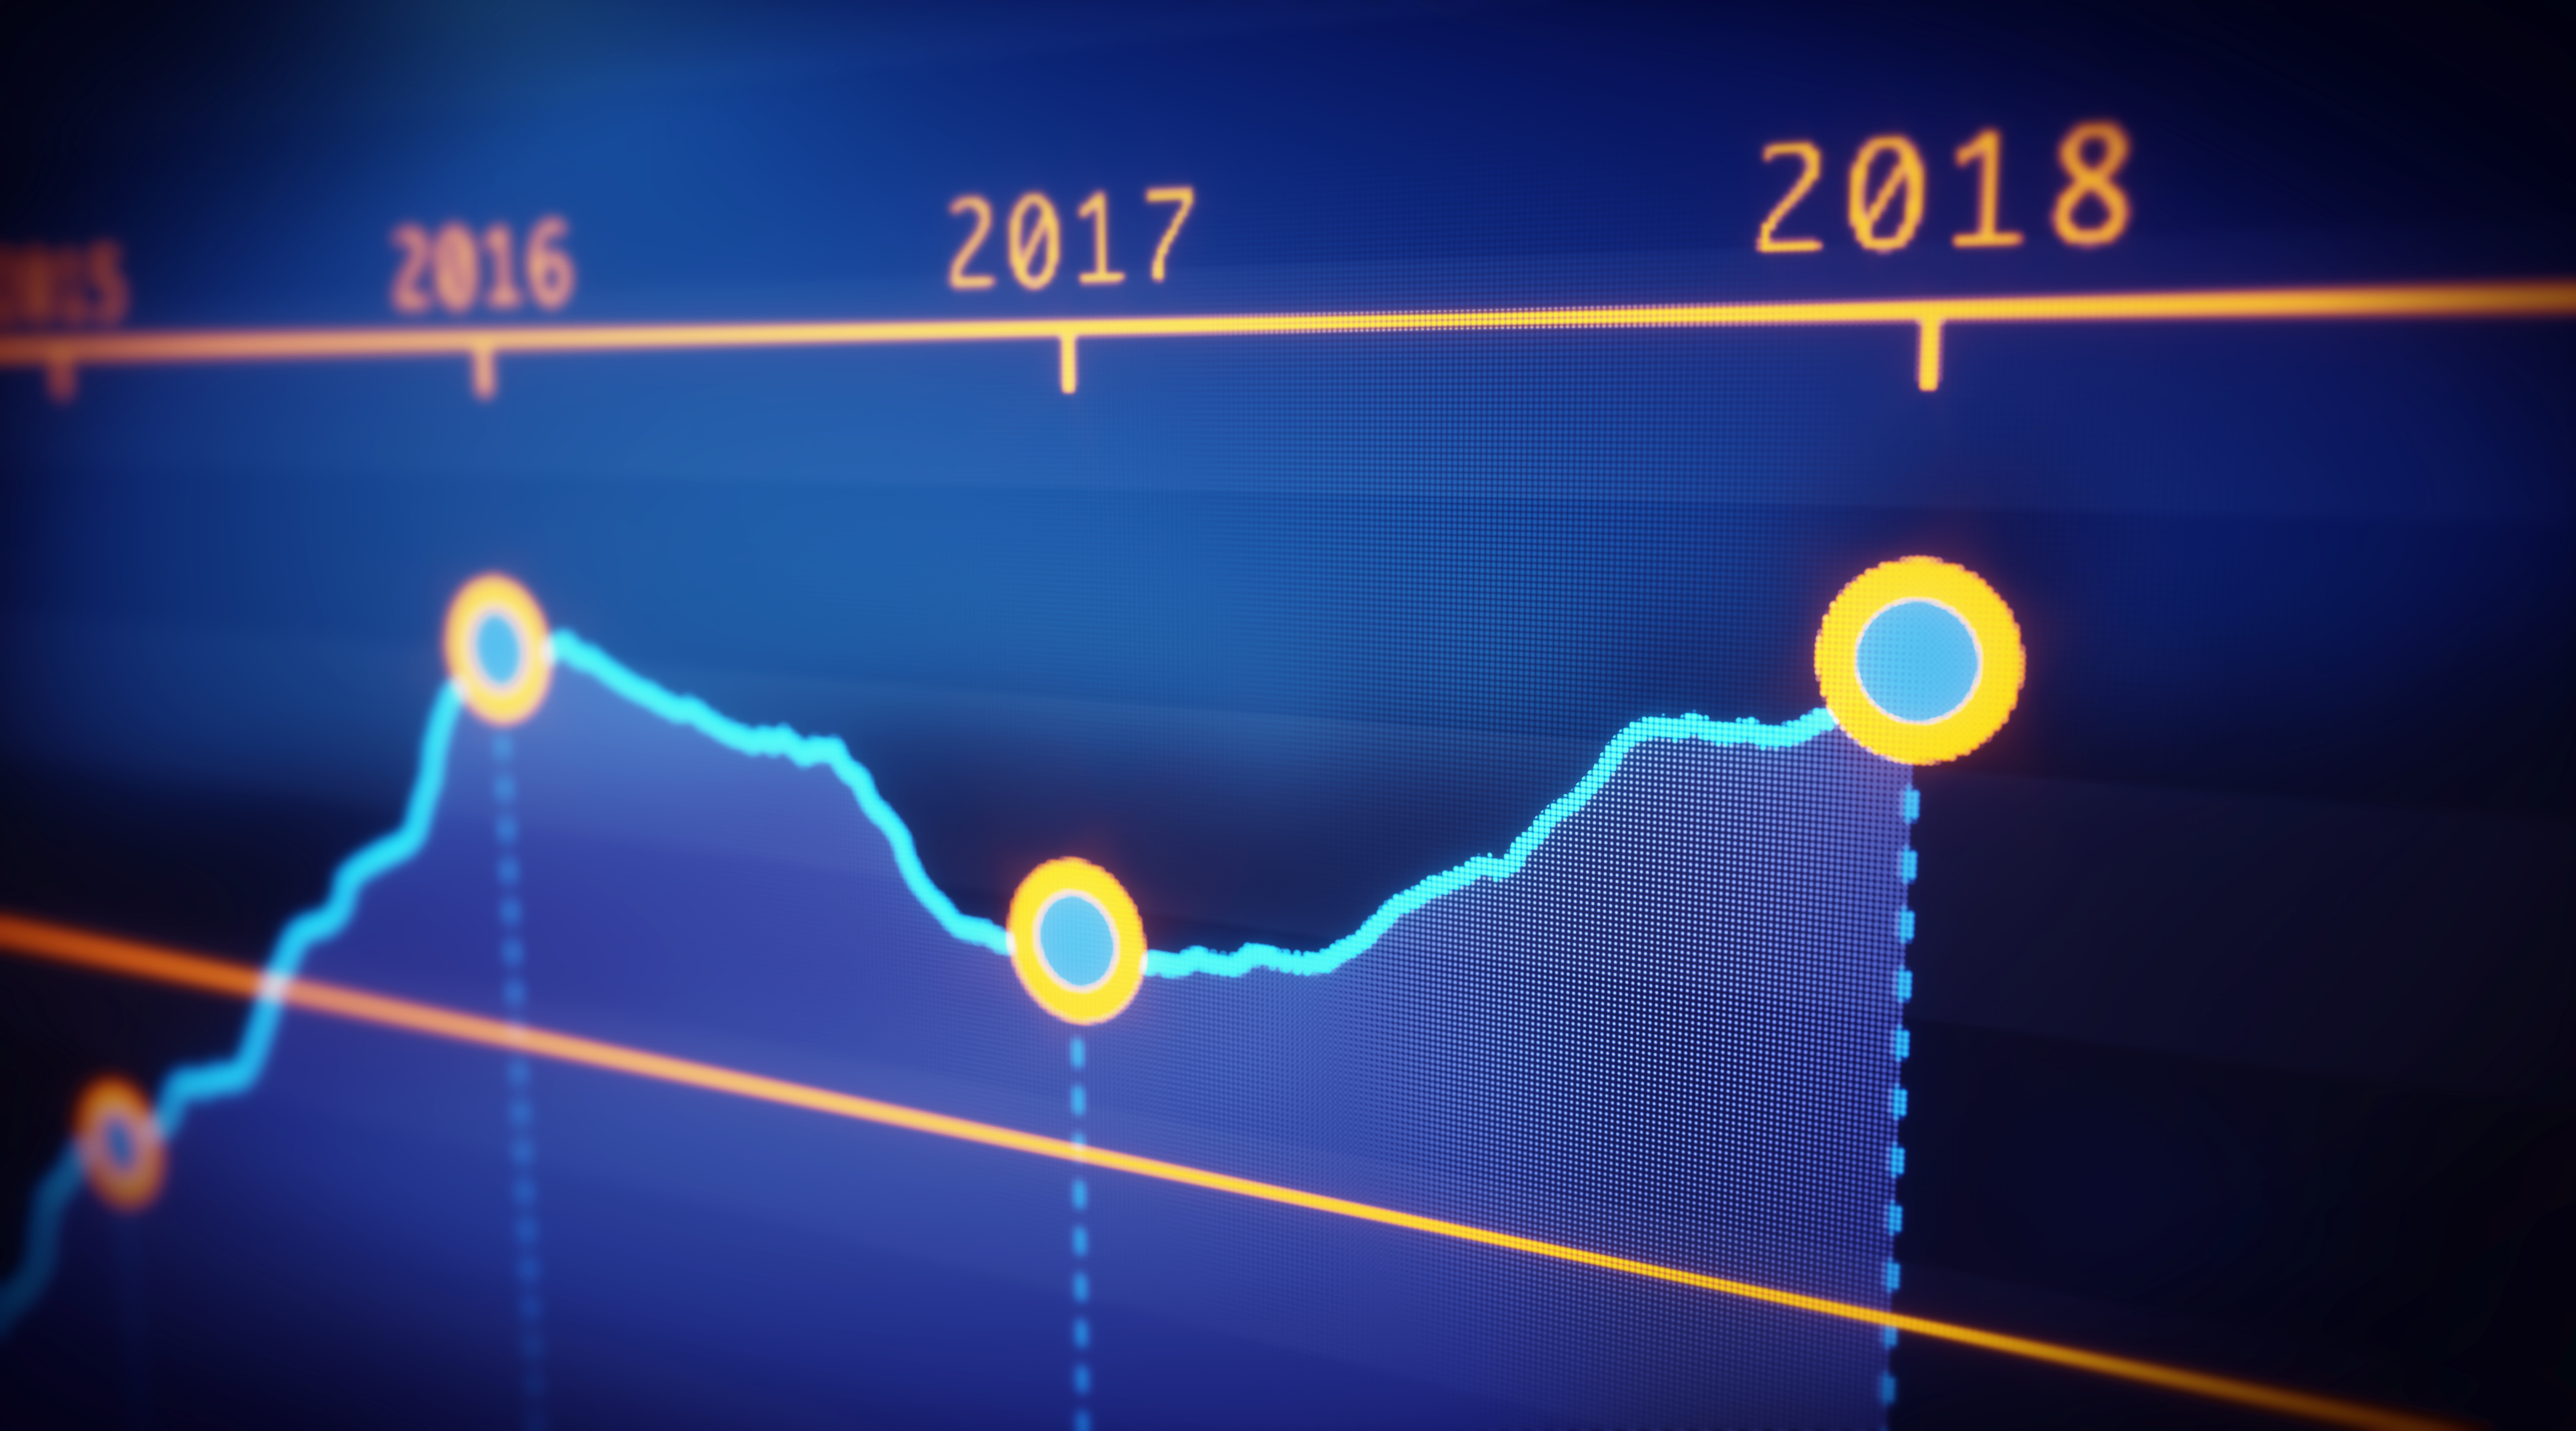 Power BI: It is 2018 but what year is it? | AccountingWEB